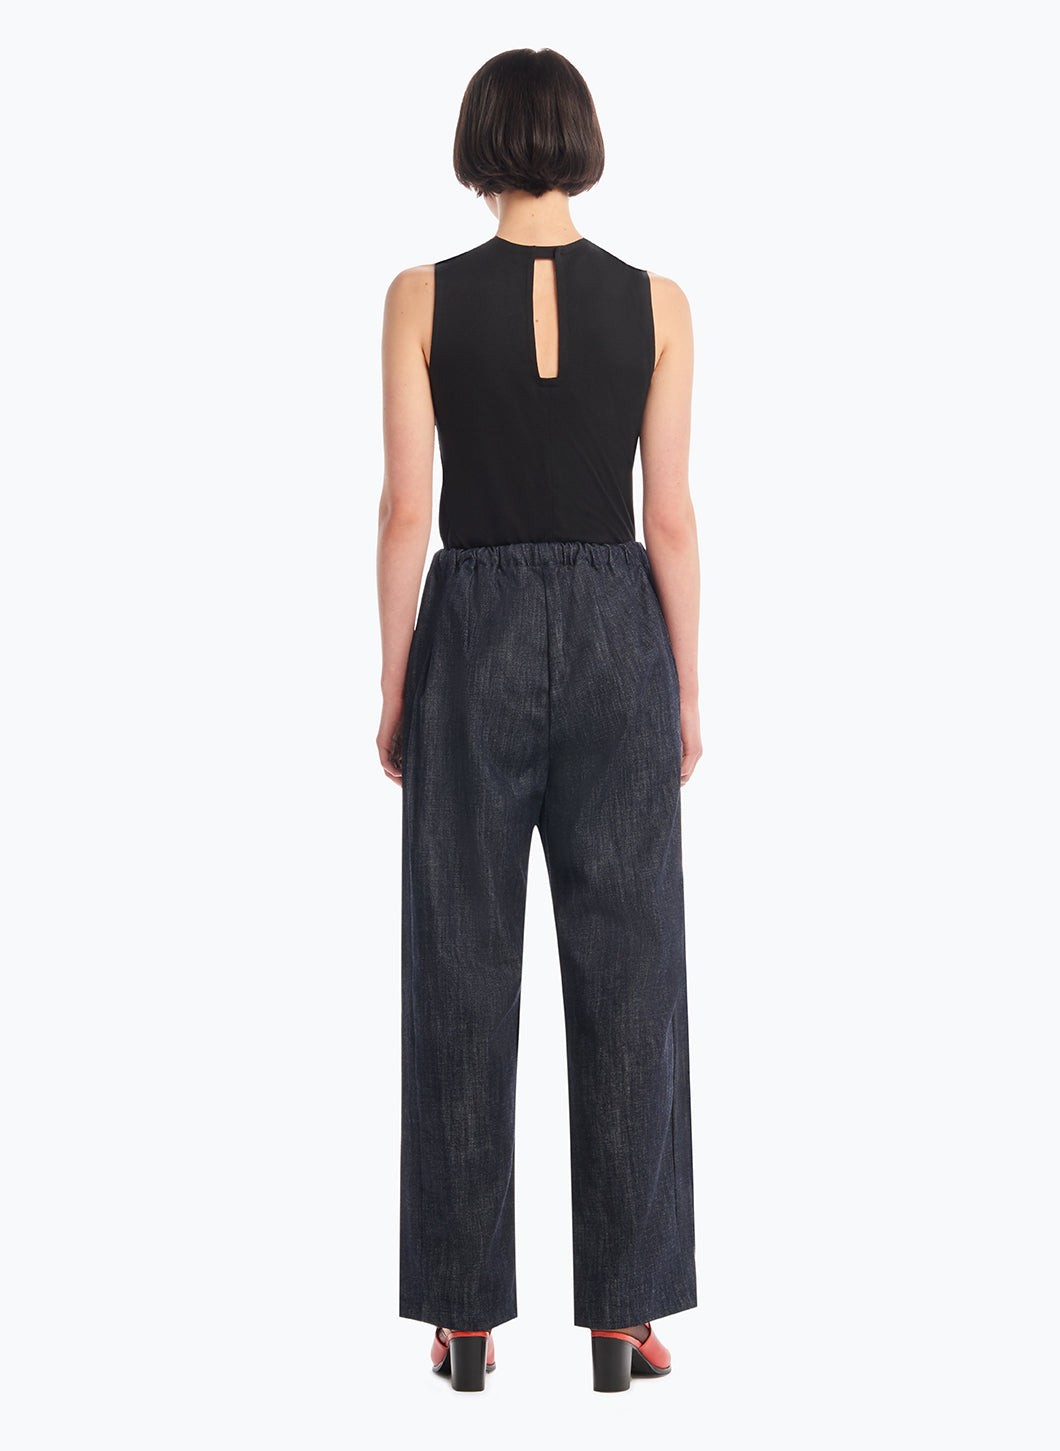 Elastic Waist Pants with Tie in Rinsed Denim